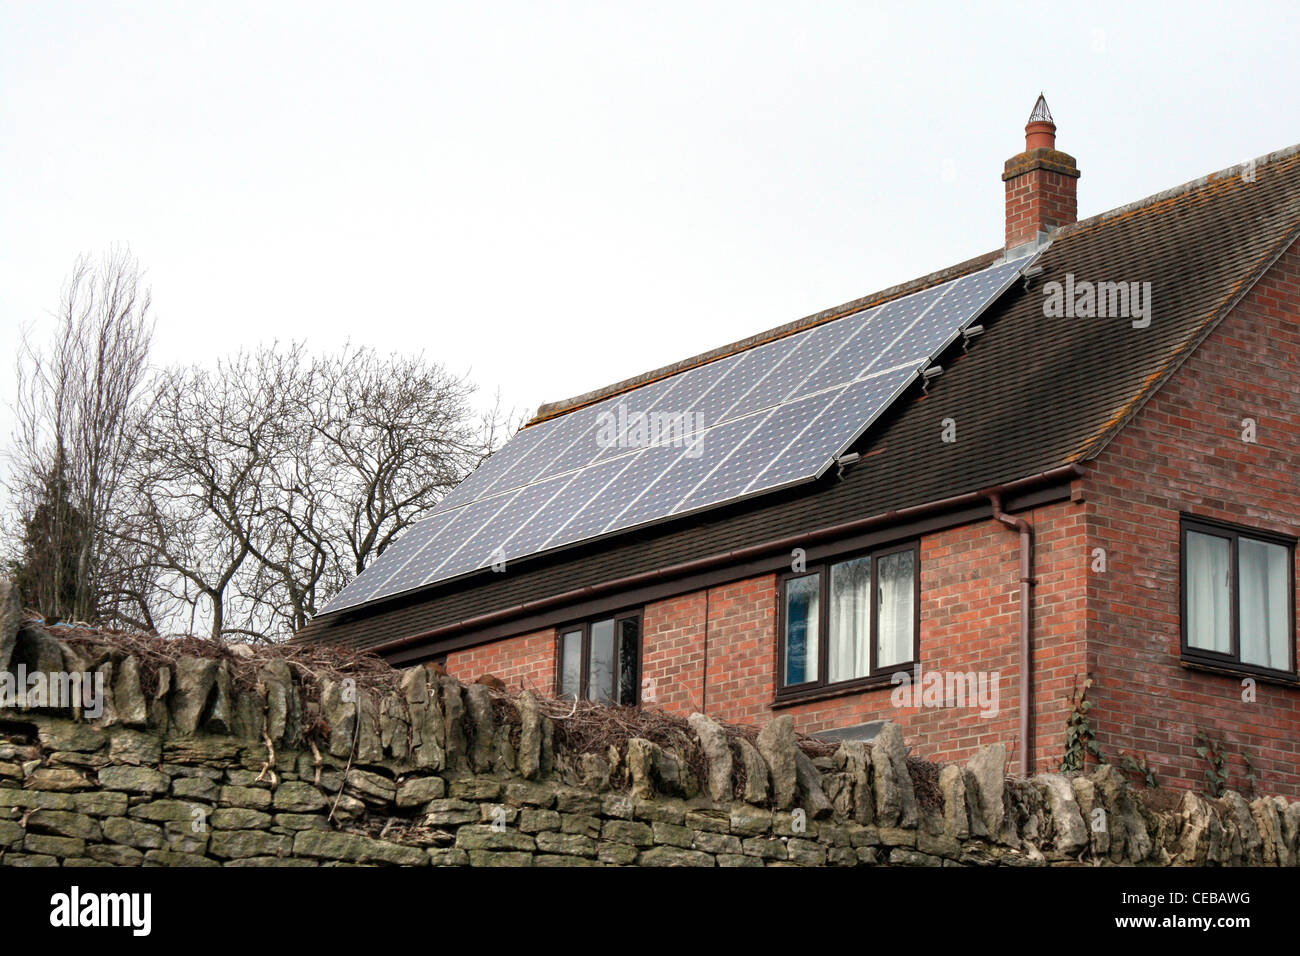 Solar power panels on new housing - Stock Image